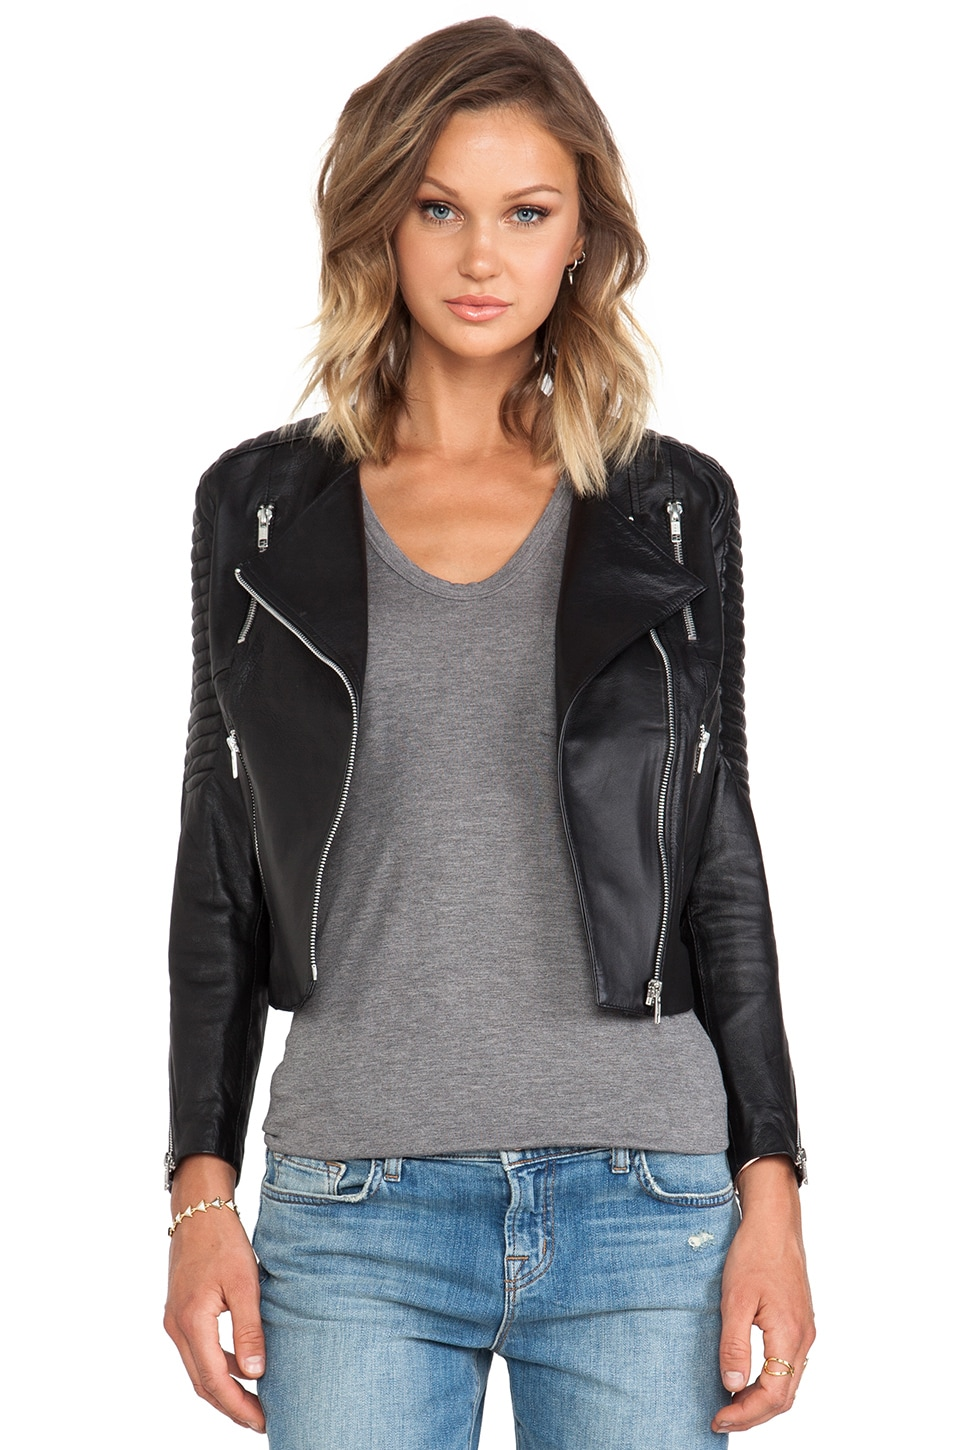 WINSTON WOLFE Slim Biker Jacket in Black